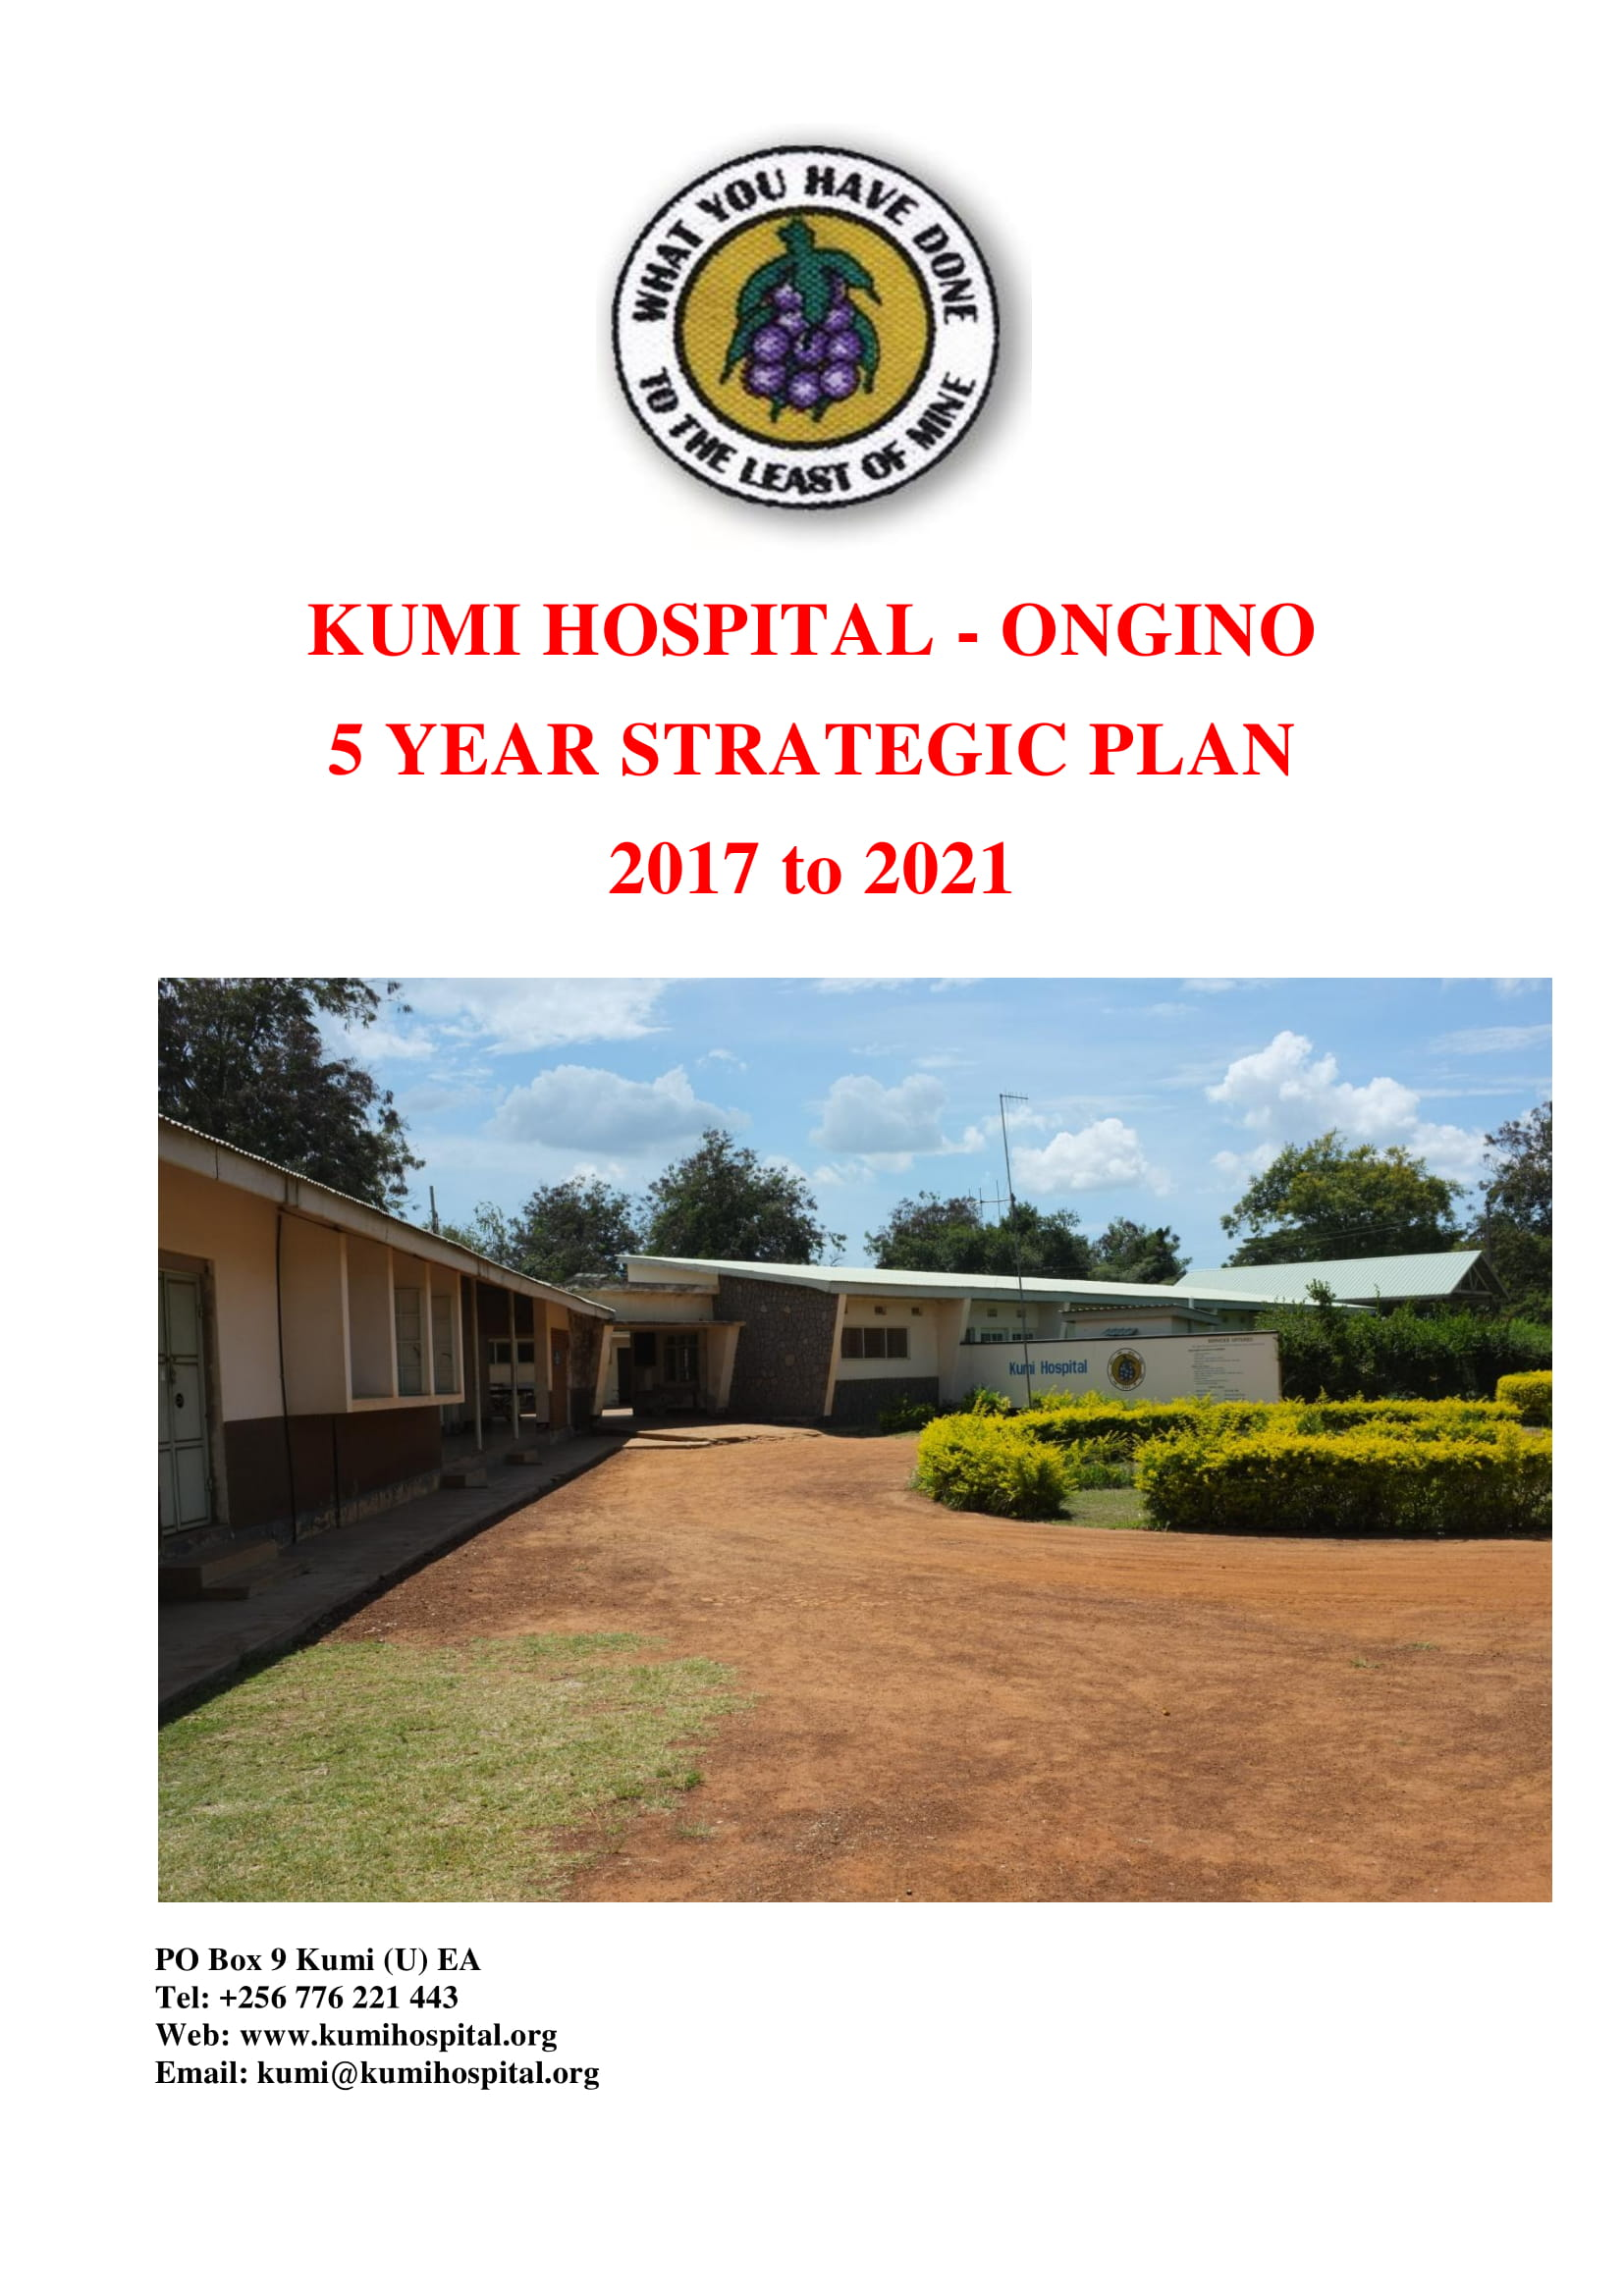 hospital 5 year strategic plan example 01